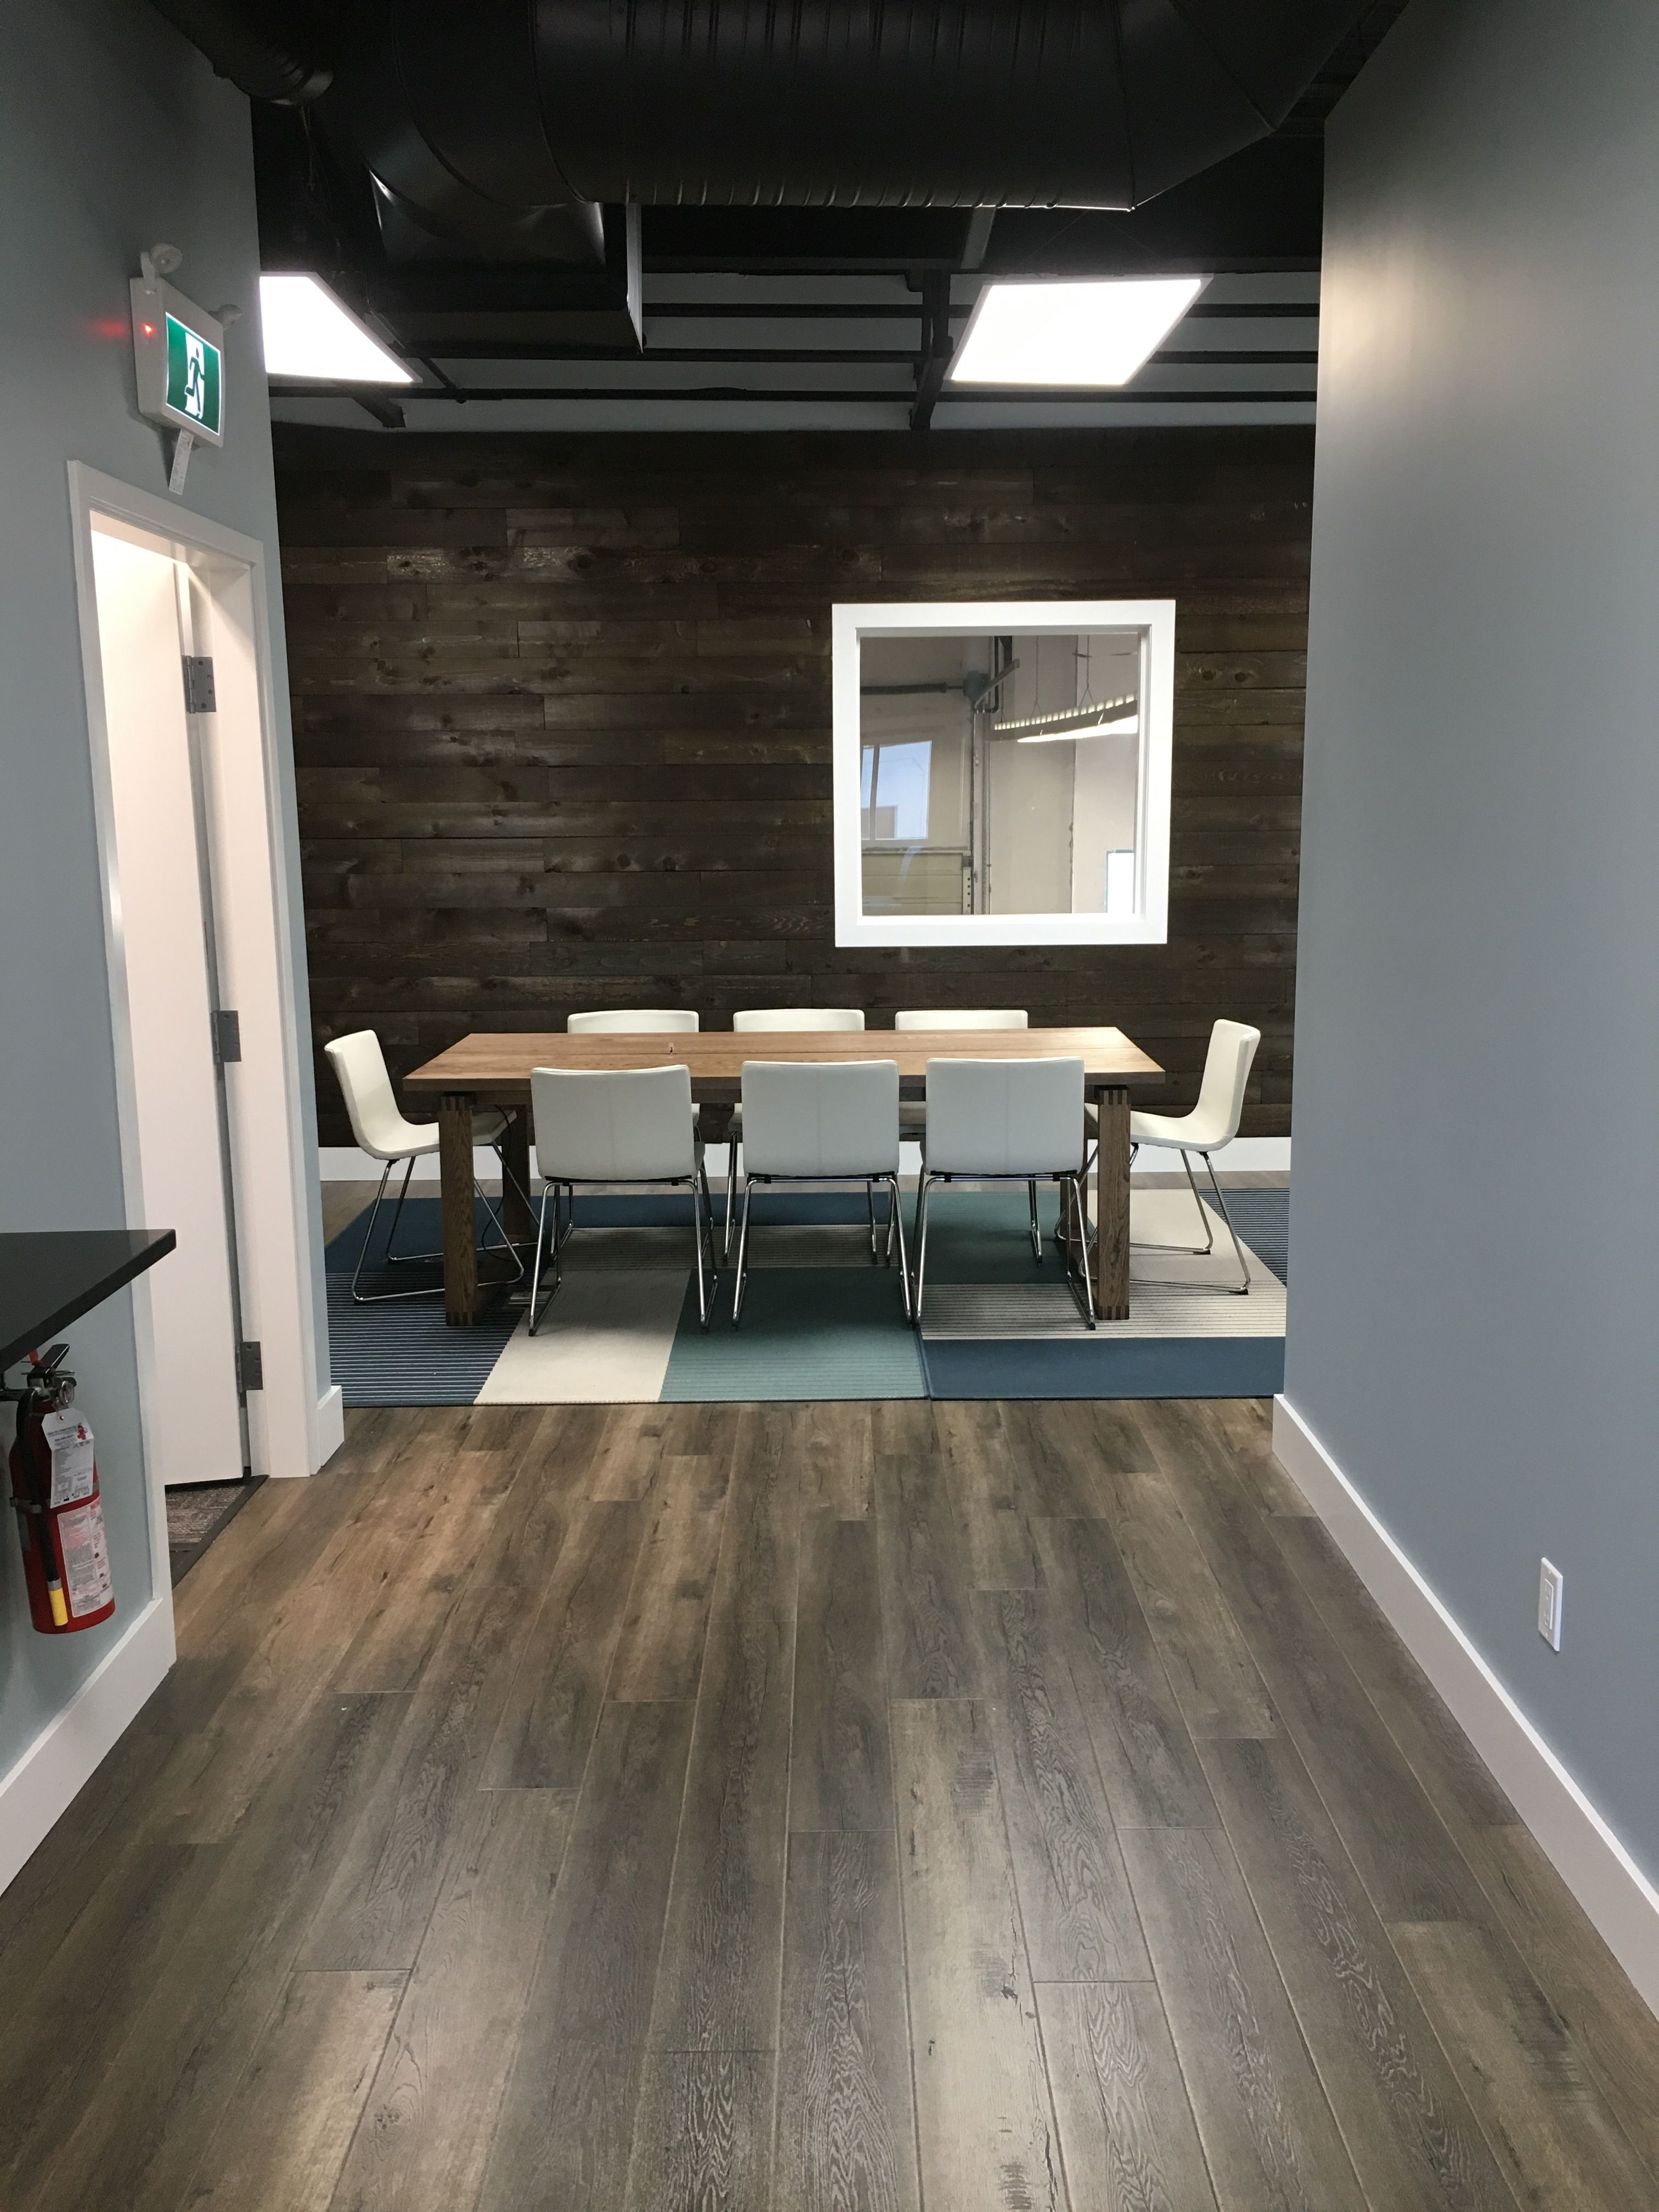 We Are Located On The 2nd Floor 12 1833 Coast Meridian Rd Port Coquitlam British Columbia V3c 6g5 Training And Development Port Coquitlam Development